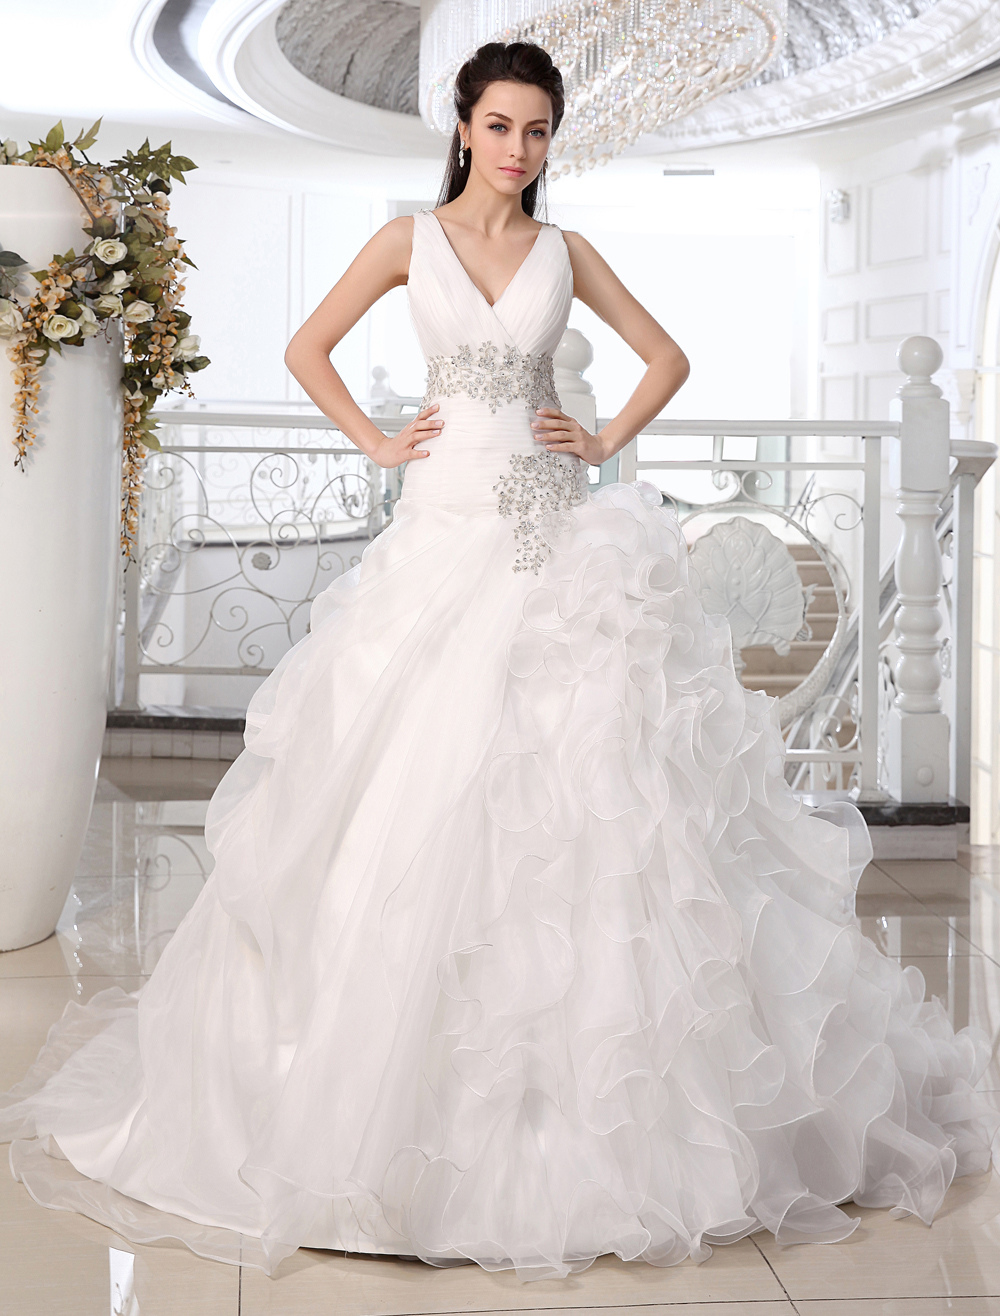 Wedding Dresses Princess Ball Gown Bridal Dress V Neck Organza Ruffles Tiered Beading Pleated Court Train Wedding Gown